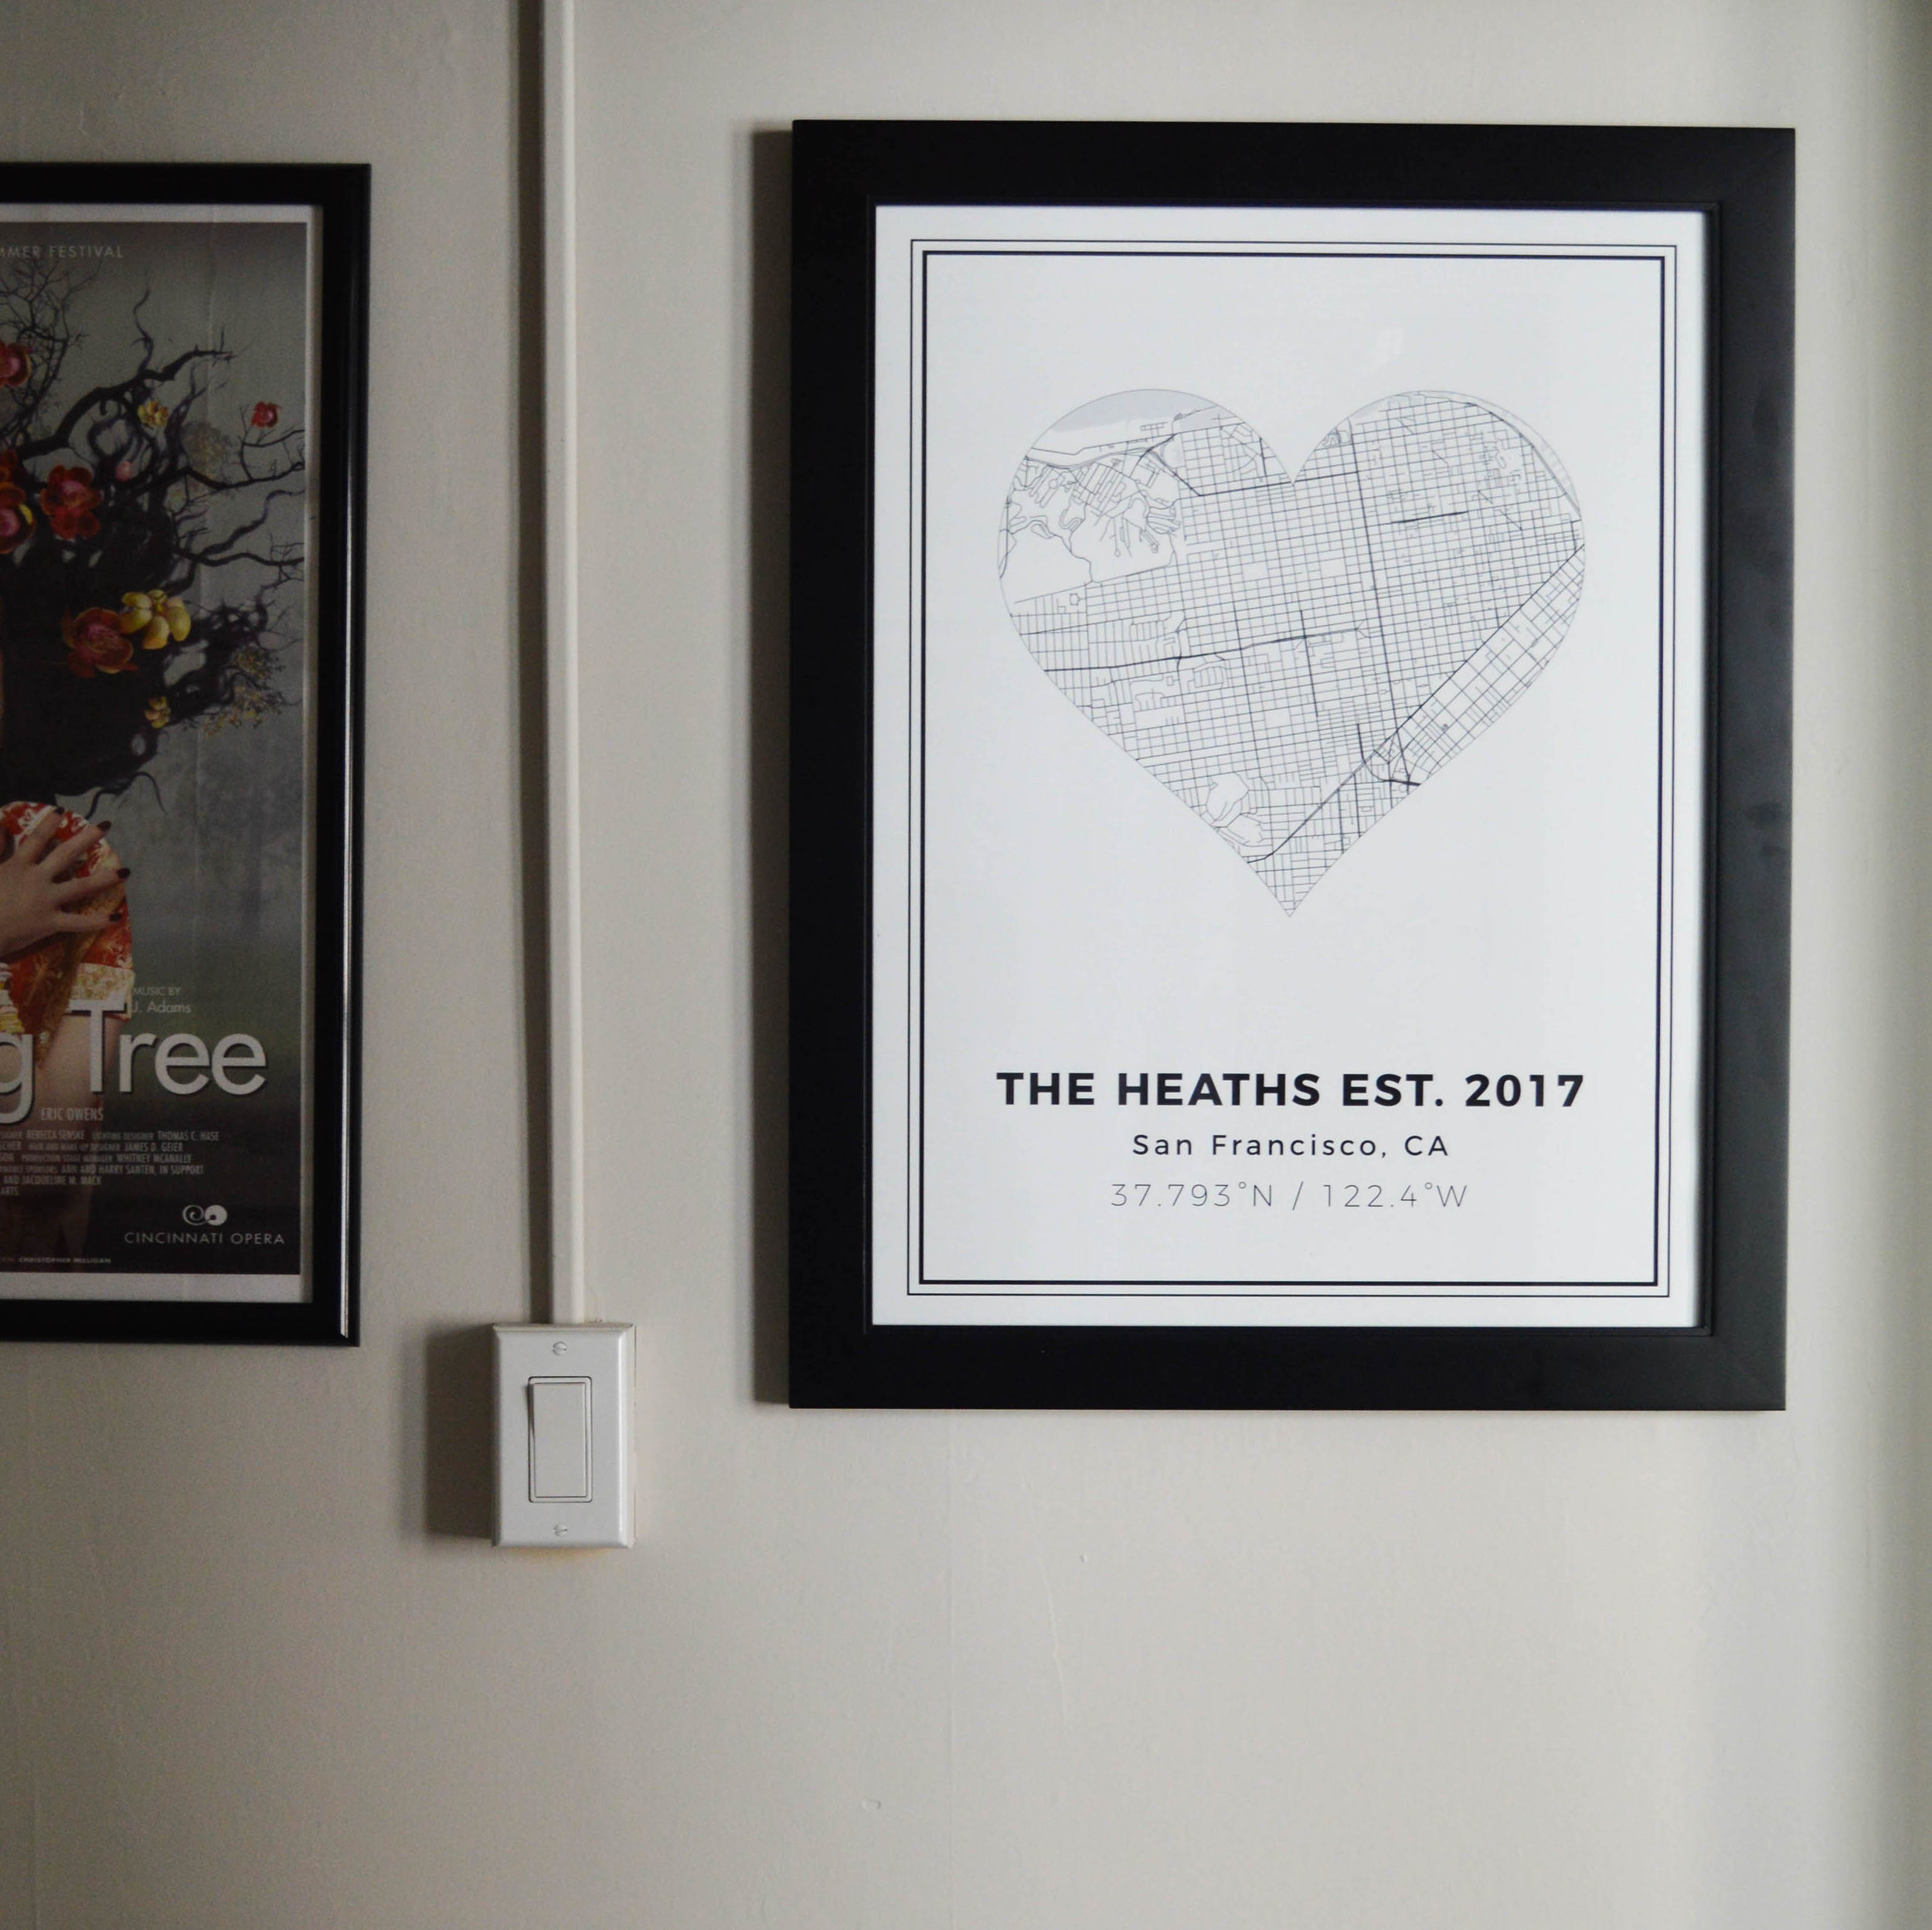 THOUGHTFUL (OFF THE REGISTRY) WEDDING GIFT + A GIVEAWAY